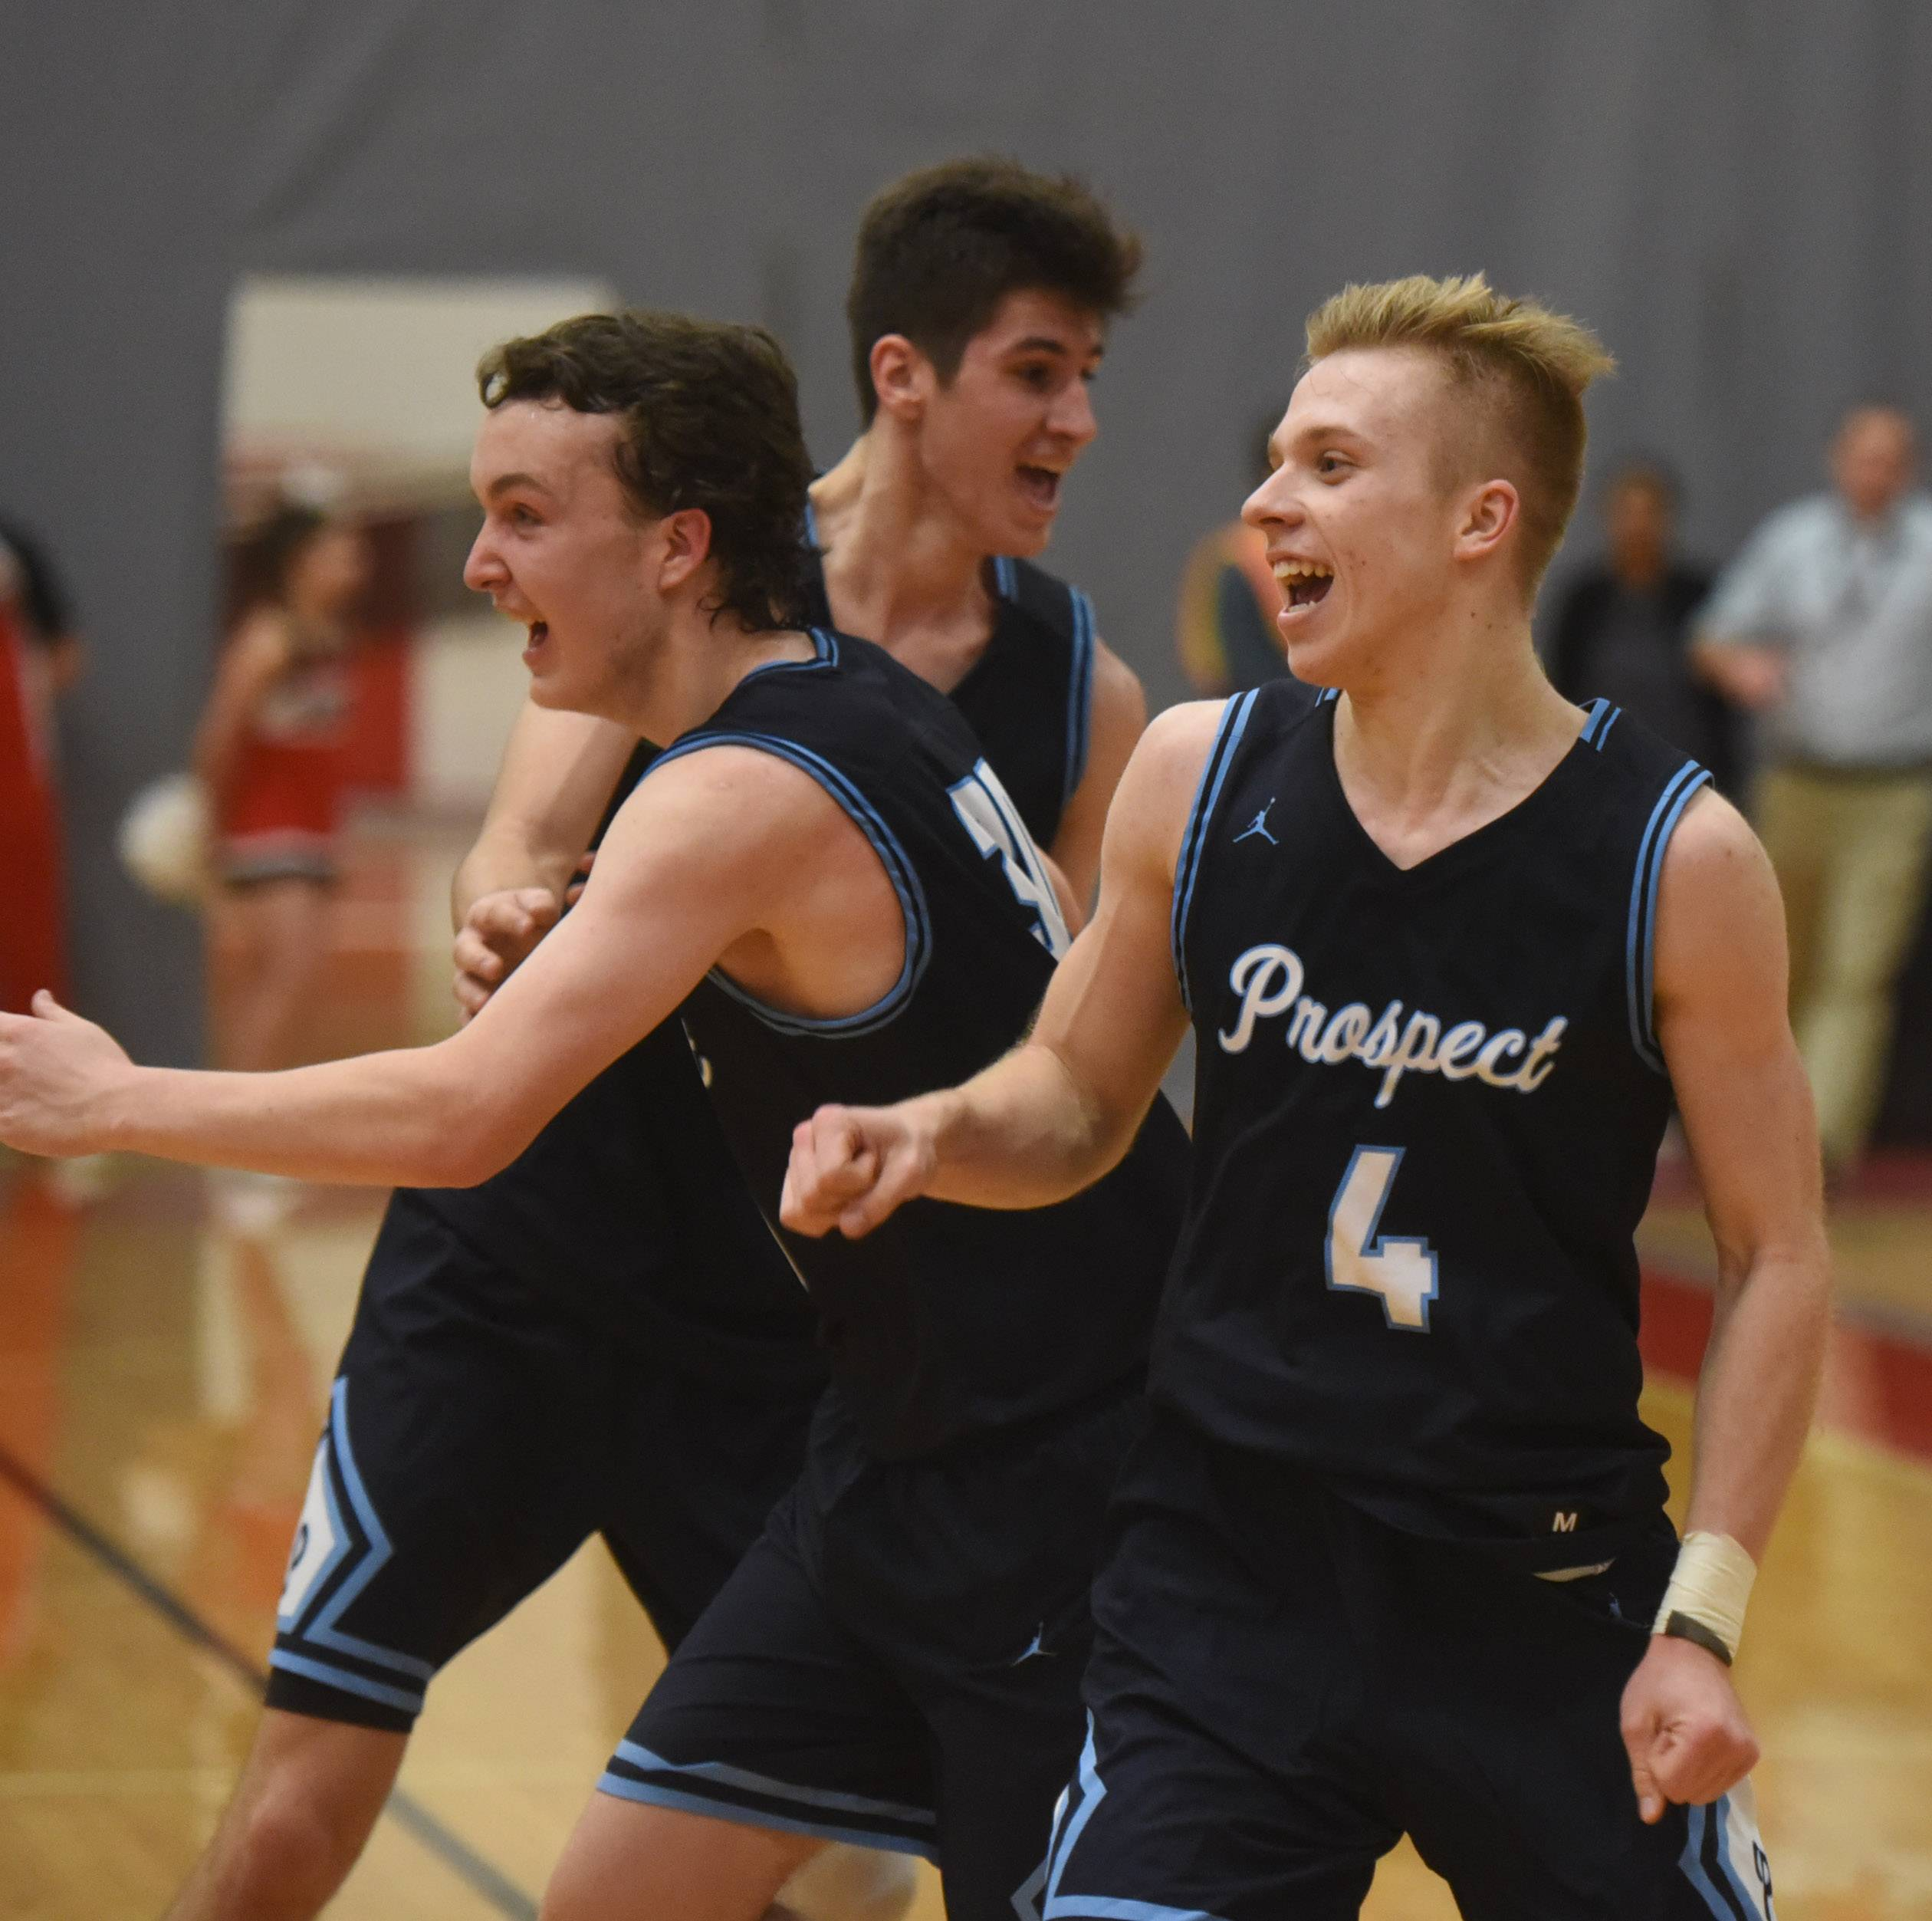 Prospect's David Swedera, front, celebrates with his teammates following their victory over Barrington during the Mid-Suburban League boys basketball championship game at Barrington Wednesday.